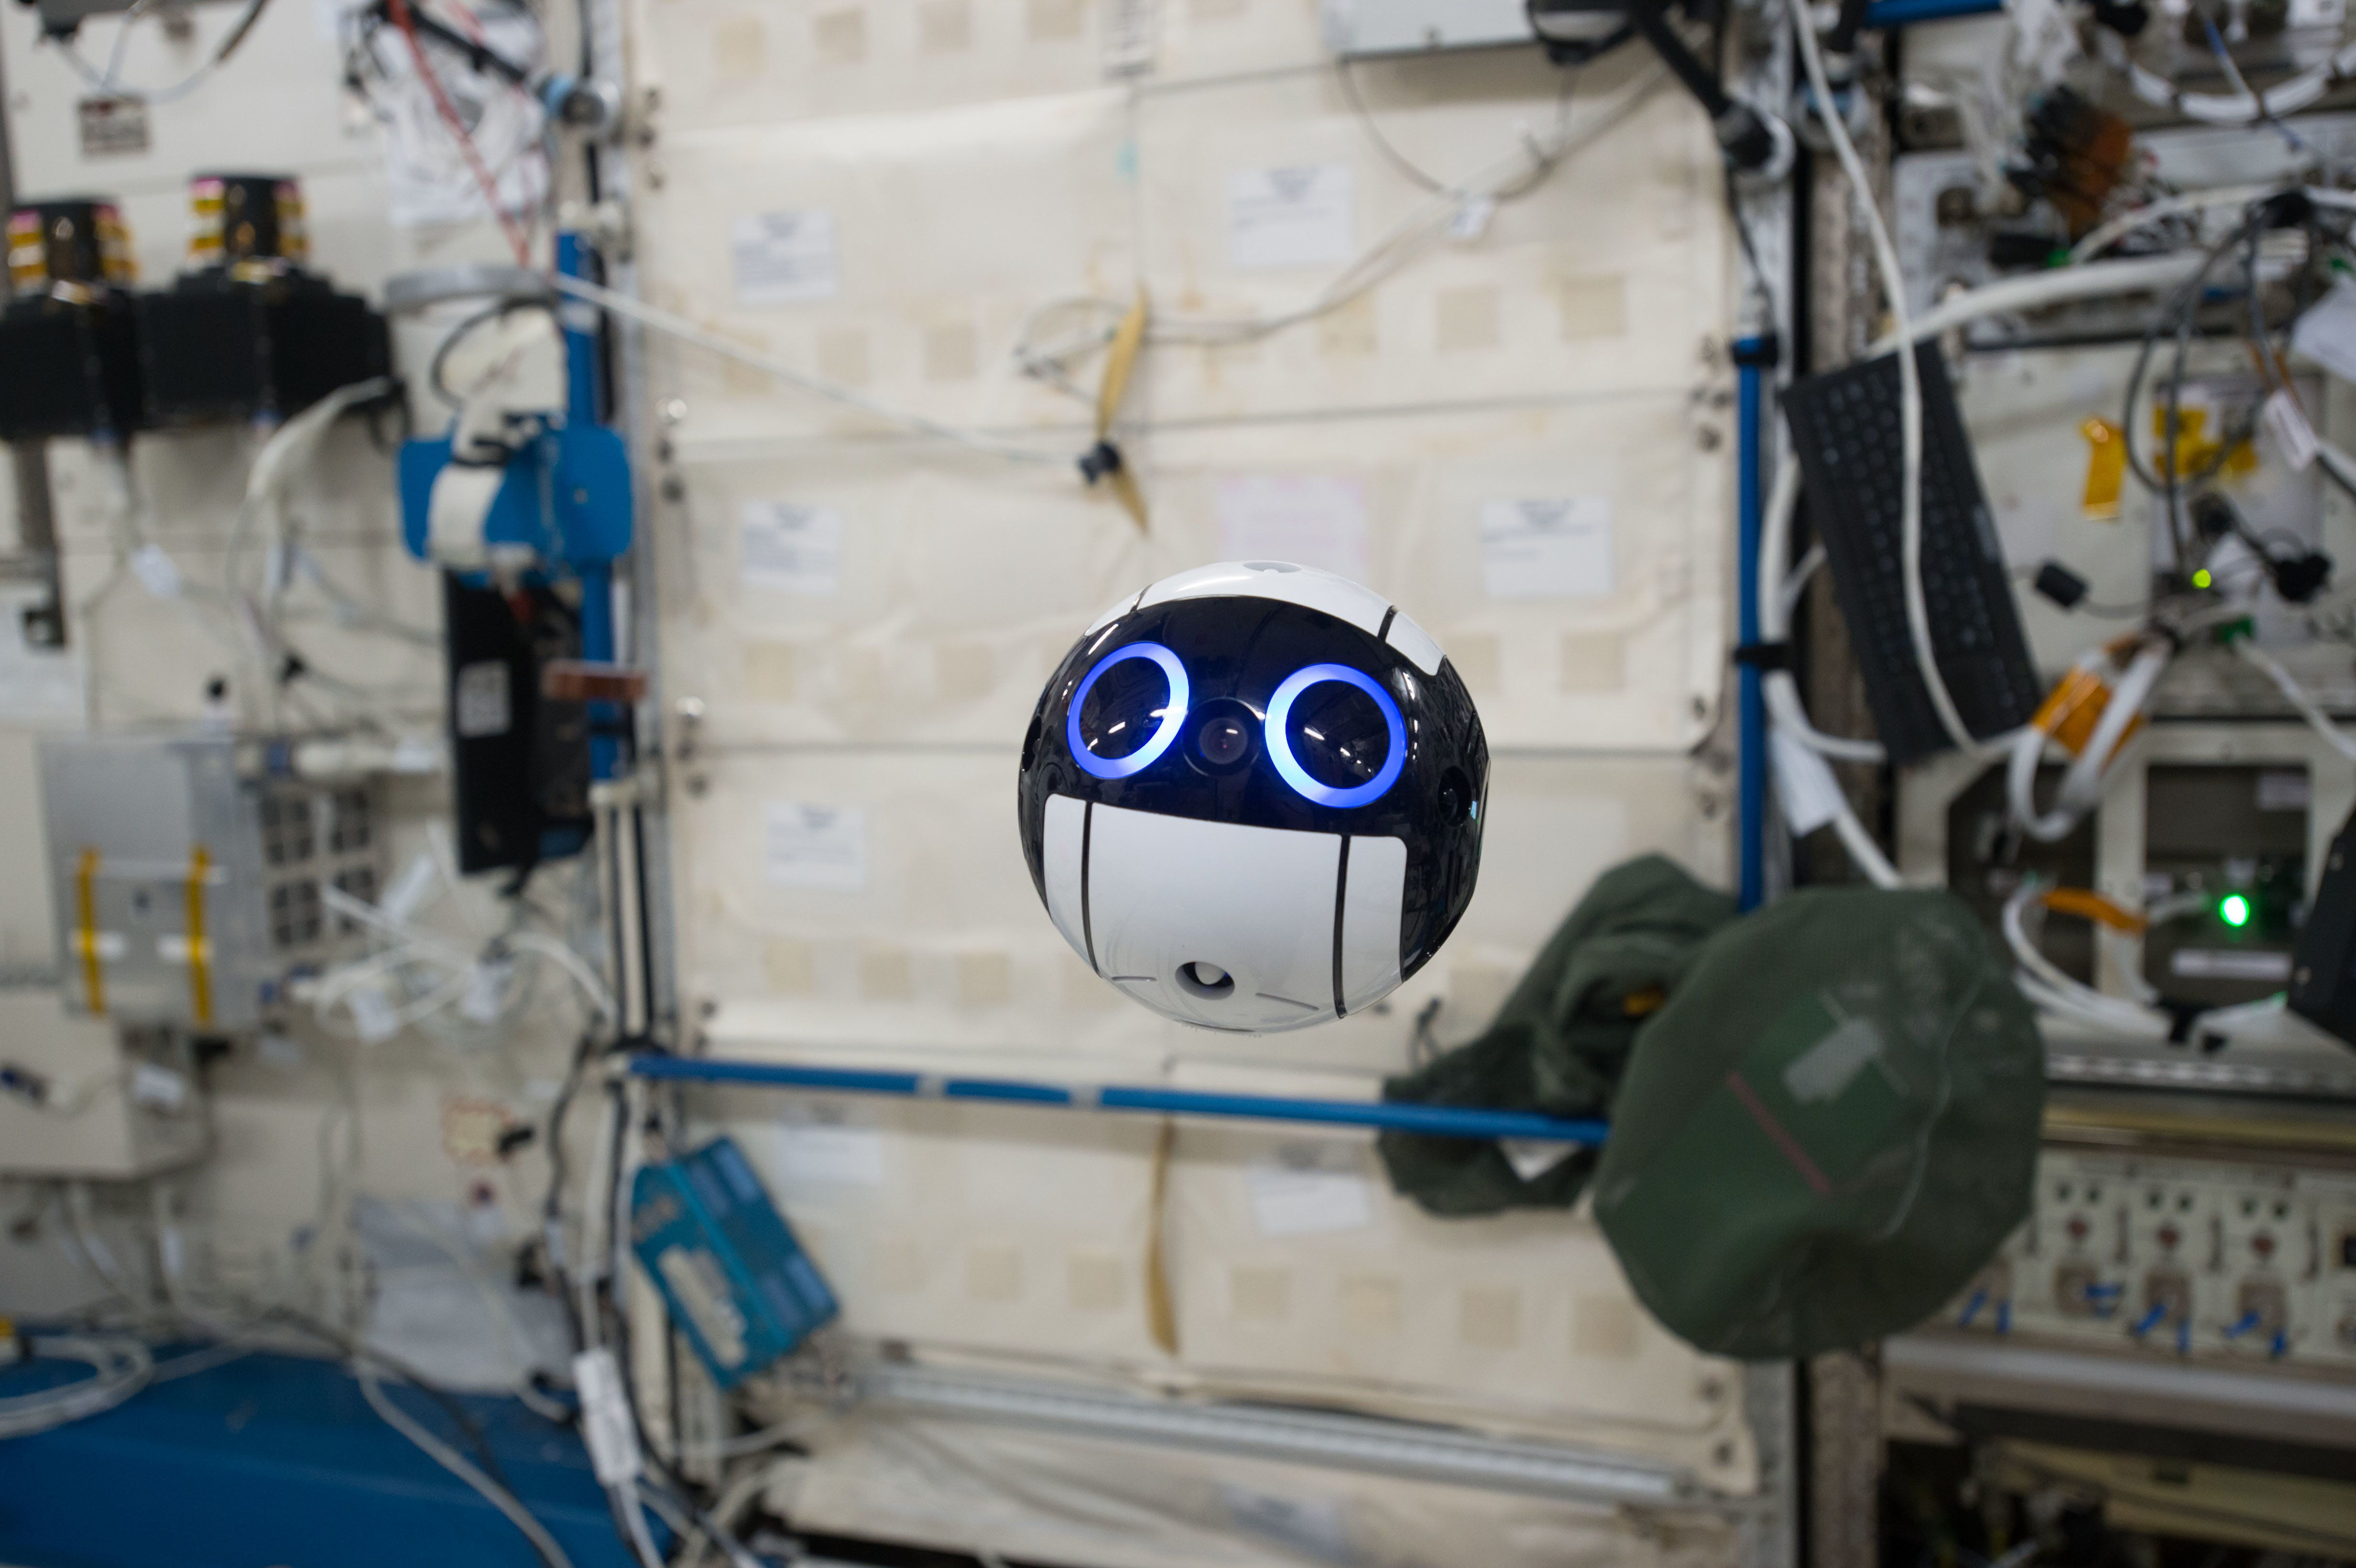 Japan's New Space Robot Brings Us One Step Closer To HAL